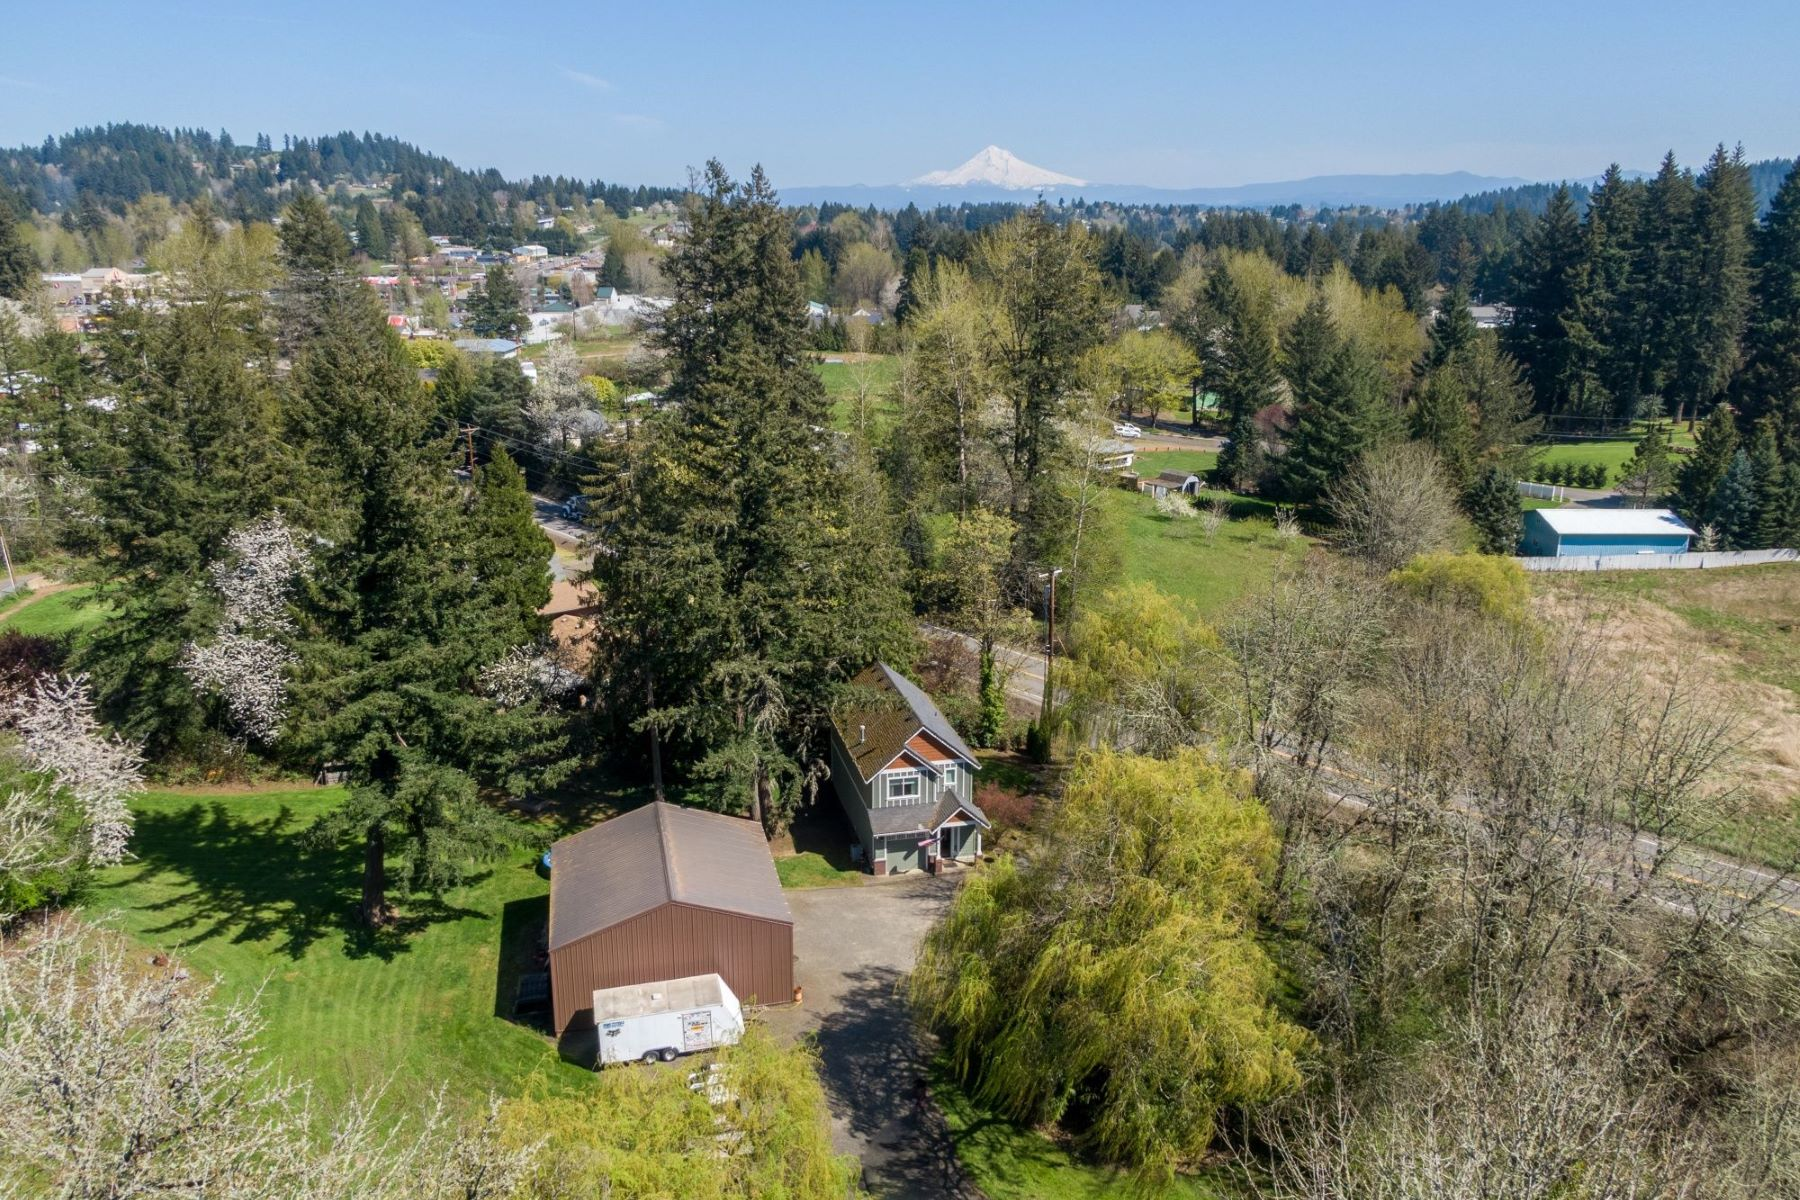 Other Residential Homes for Active at 19551 SE HIGHWAY 212 Damascus, OR 97089 19551 SE HIGHWAY 212 Damascus, Oregon 97089 United States